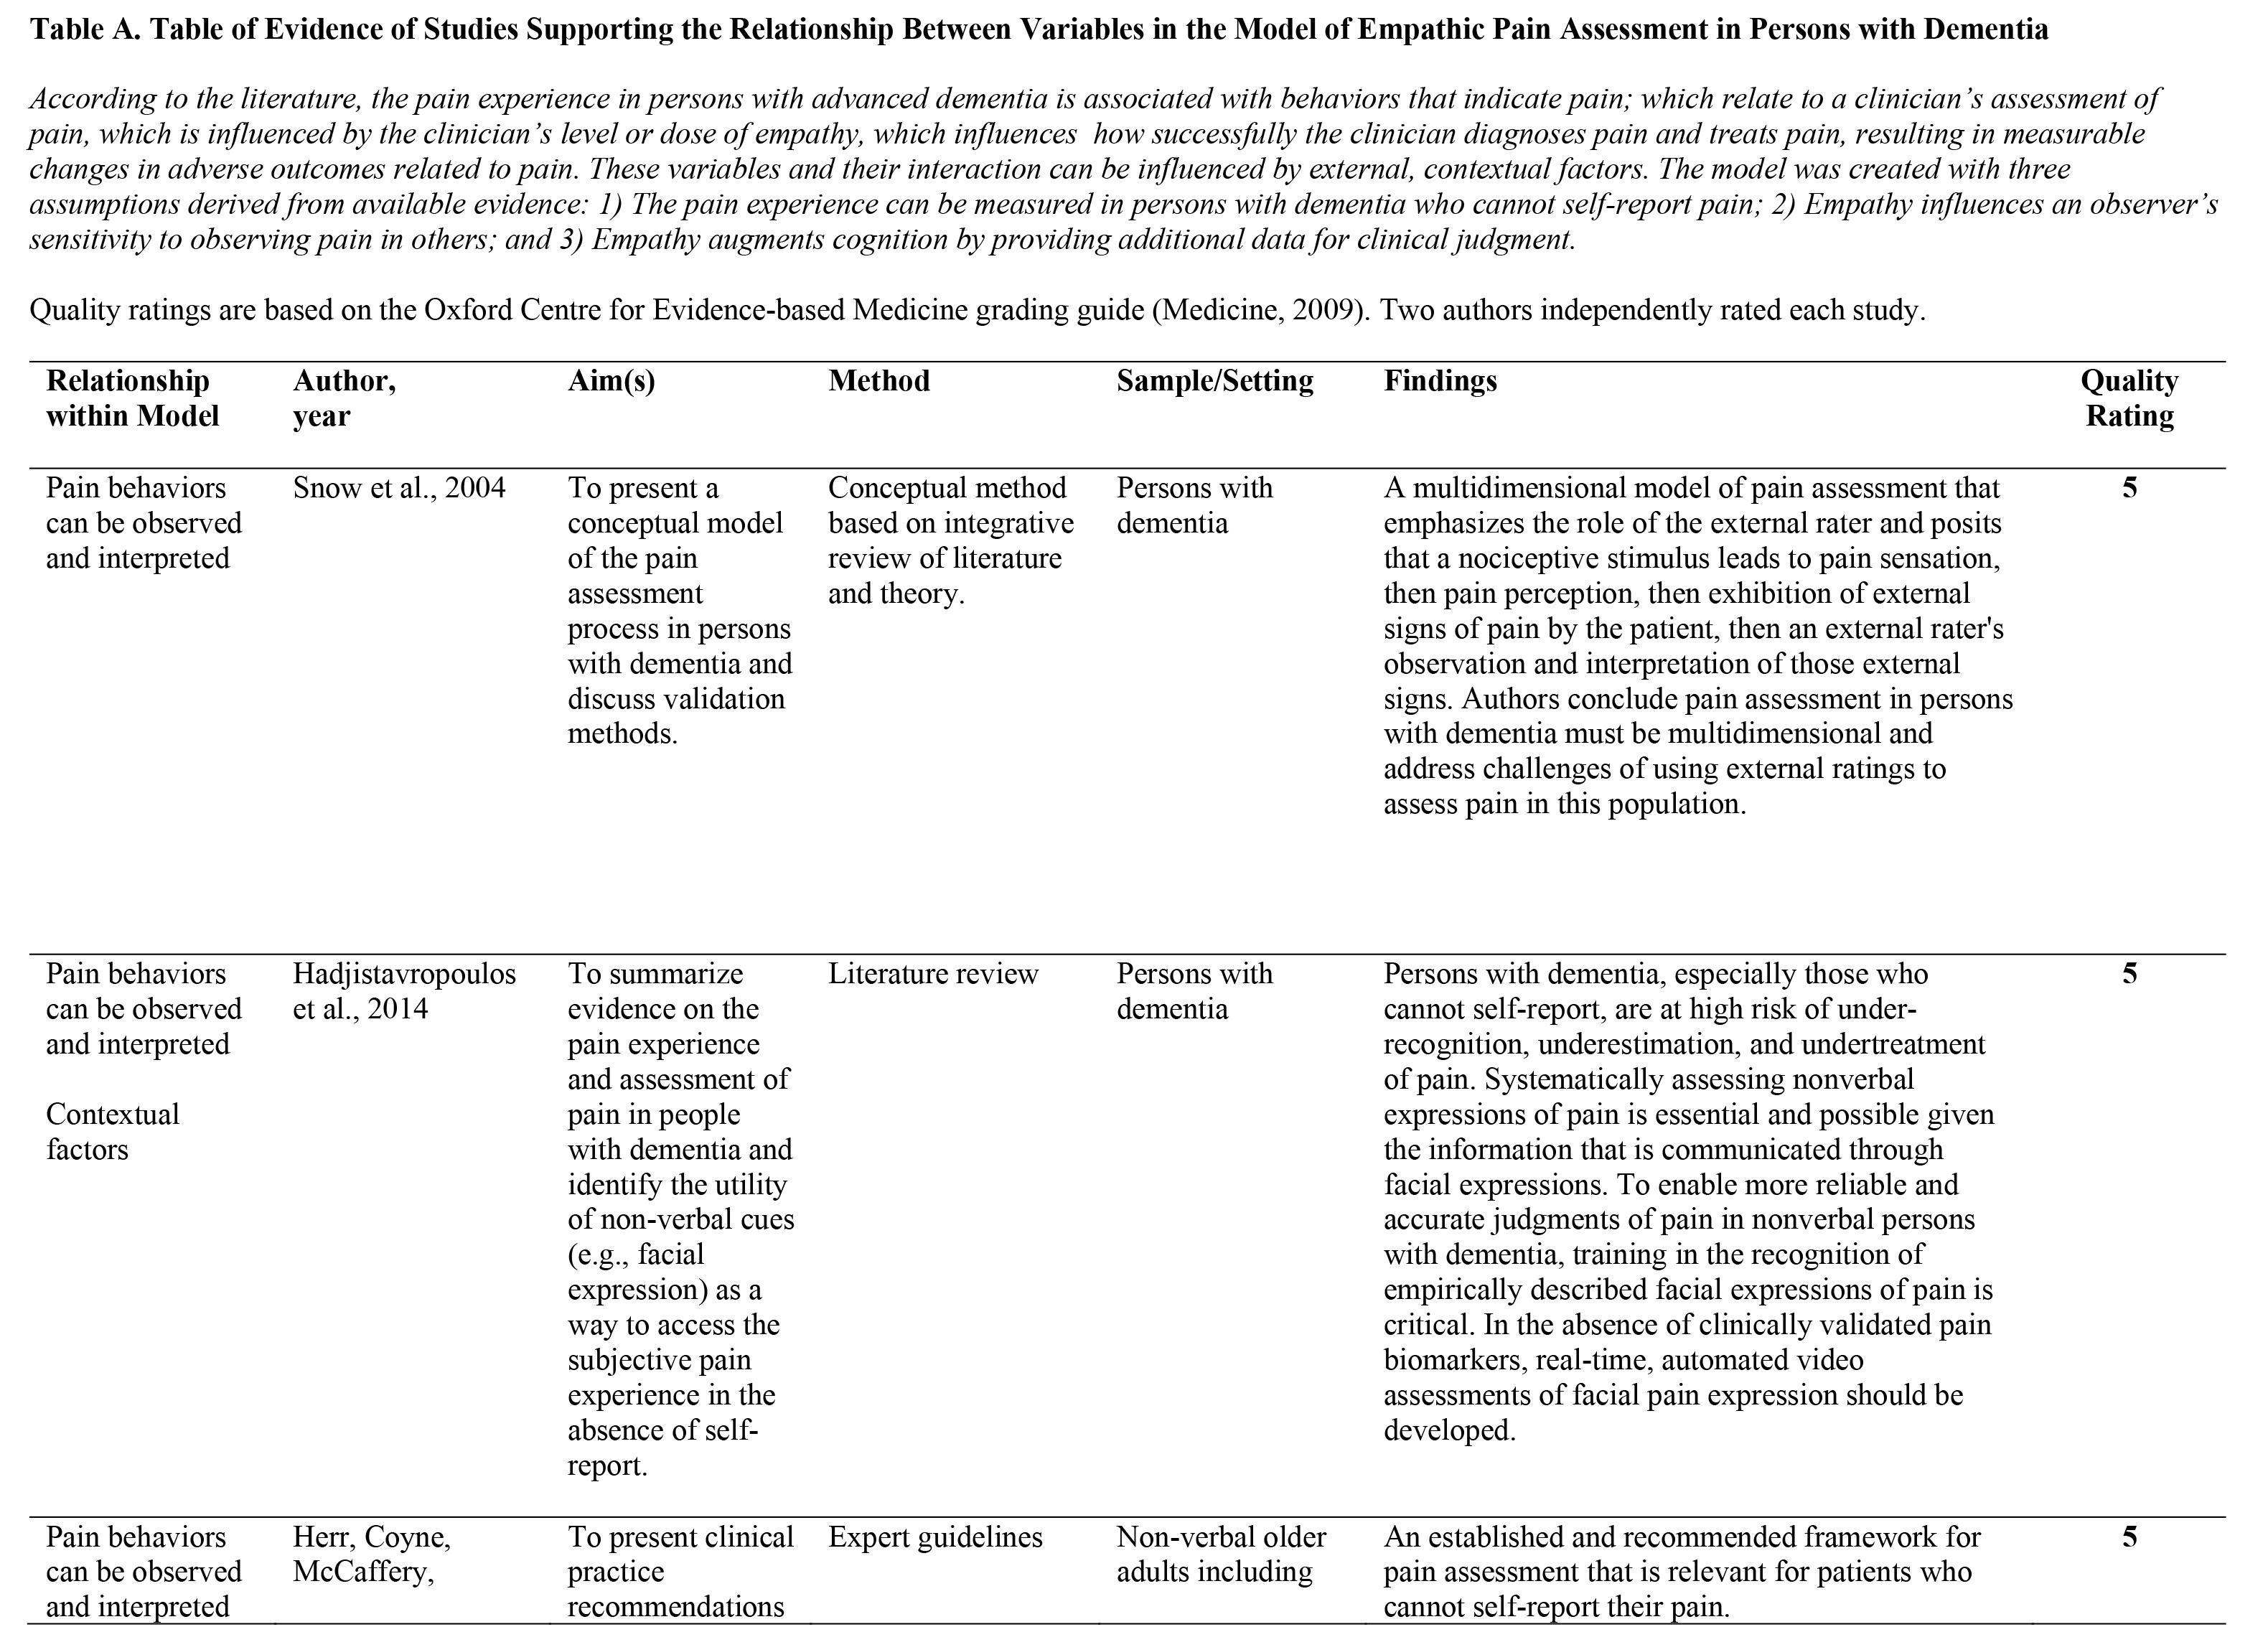 Table of Evidence of Studies Supporting the Relationship Between Variables in the Model of Empathic Pain Assessment in Persons with DementiaAccording to the literature, the pain experience in persons with advanced dementia is associated with behaviors that indicate pain; which relate to a clinician's assessment of pain, which is influenced by the clinician's level or dose of empathy, which influences how successfully the clinician diagnoses pain and treats pain, resulting in measurable changes in adverse outcomes related to pain. These variables andtheir interaction can be influenced by external, contextual factors. The model was created with three assumptions derived from available evidence: 1) The pain experience can be measured in persons with dementia who cannot self-report pain; 2) Empathy influences an observer's sensitivity to observing pain in others; and 3) Empathy augments cognition by providing additional data for clinical judgment.Quality ratings are based on the Oxford Centre for Evidence-based Medicine grading guide (Medicine, 2009). Two authors independently rated each study.